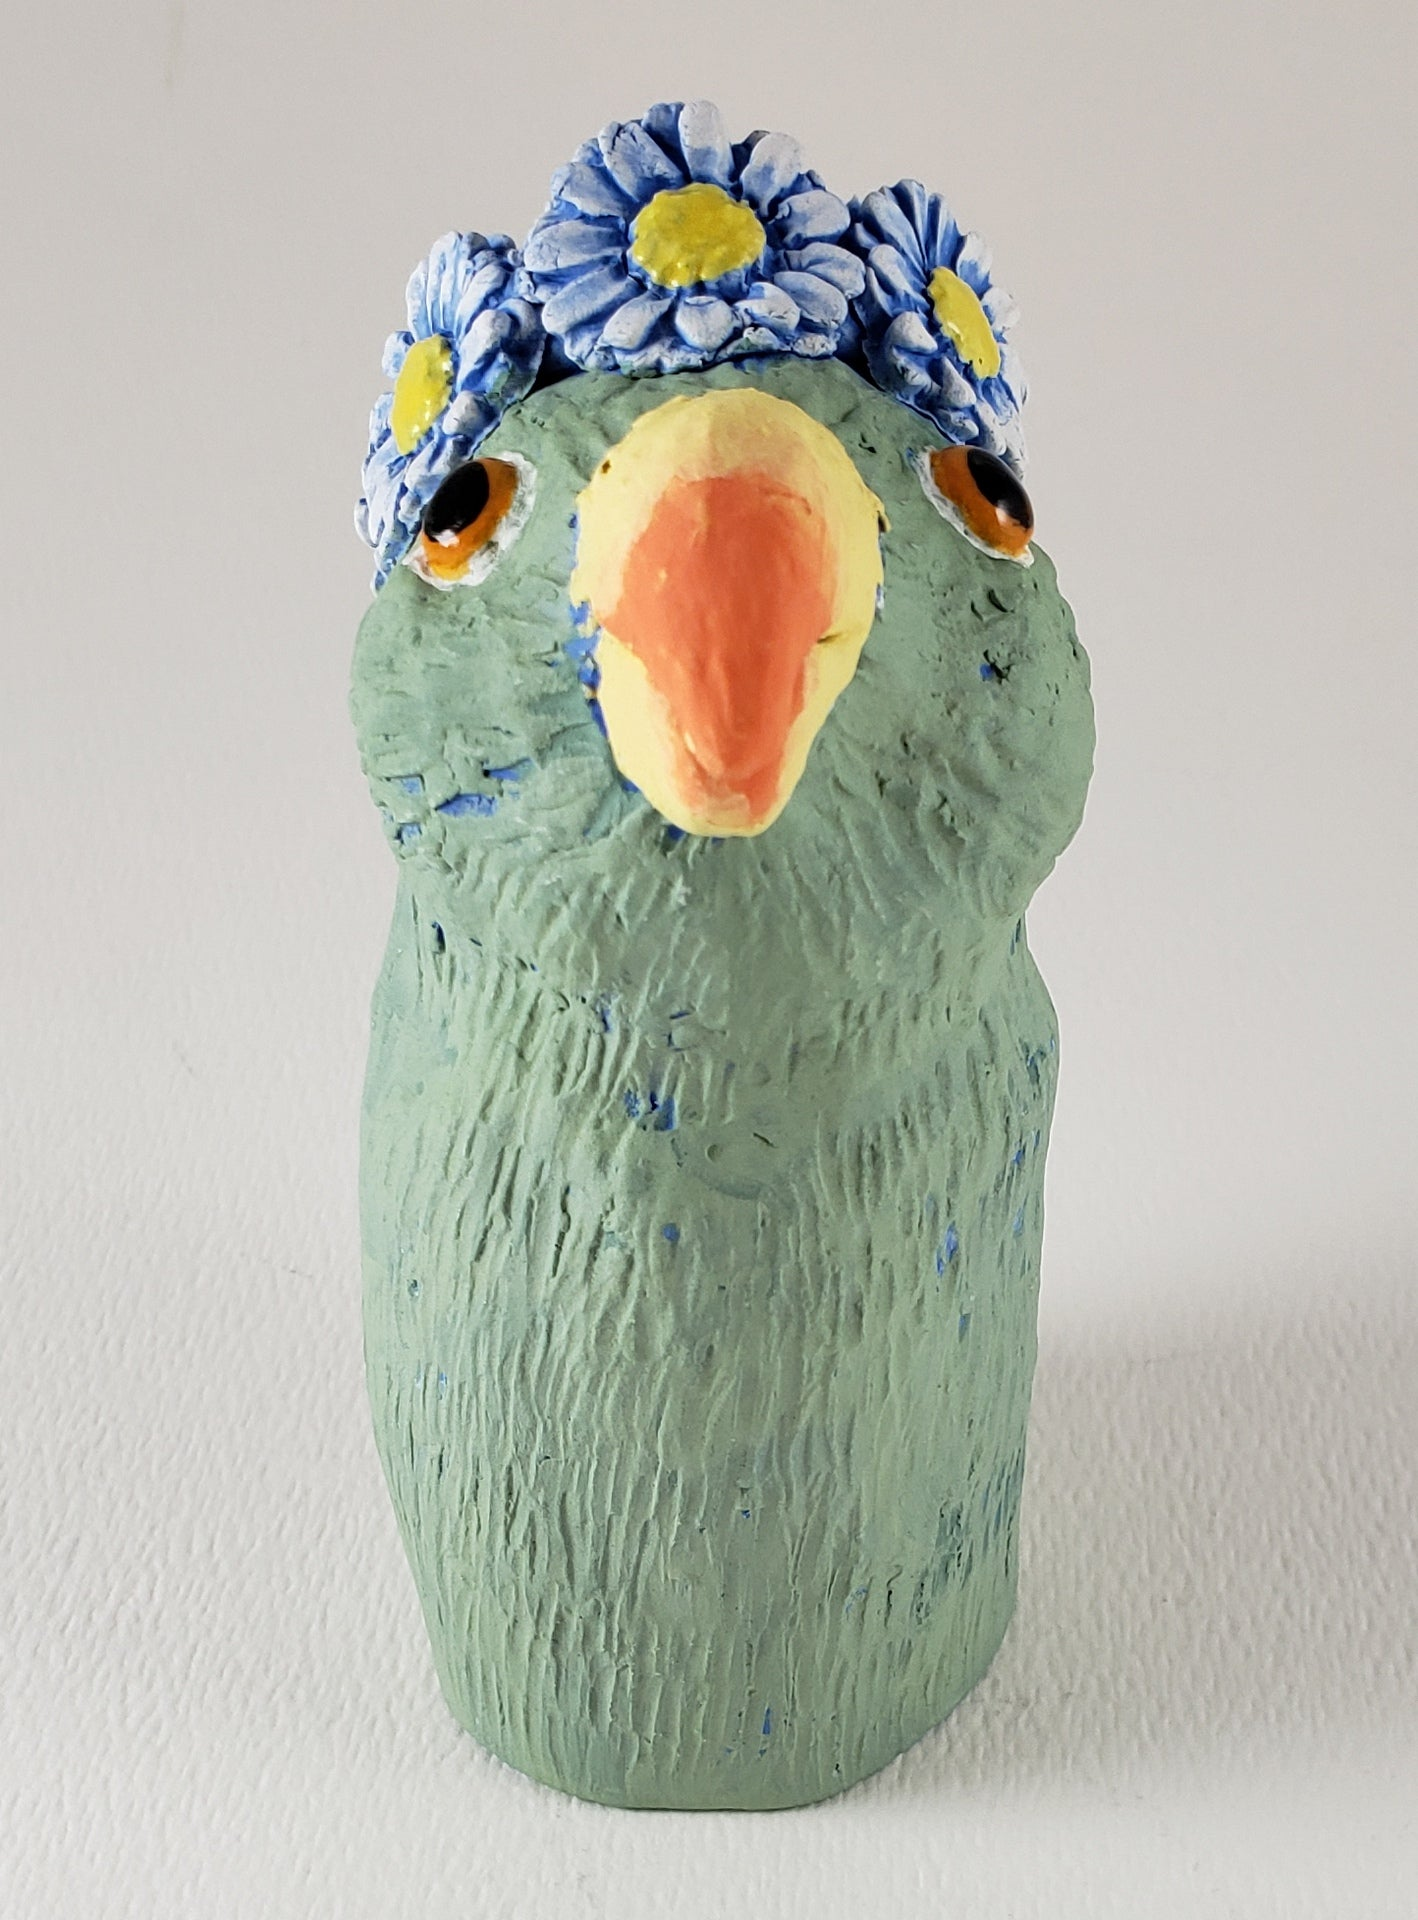 This is Not A Parrot Wears a Daisy Headband - Artworks by Karen Fincannon